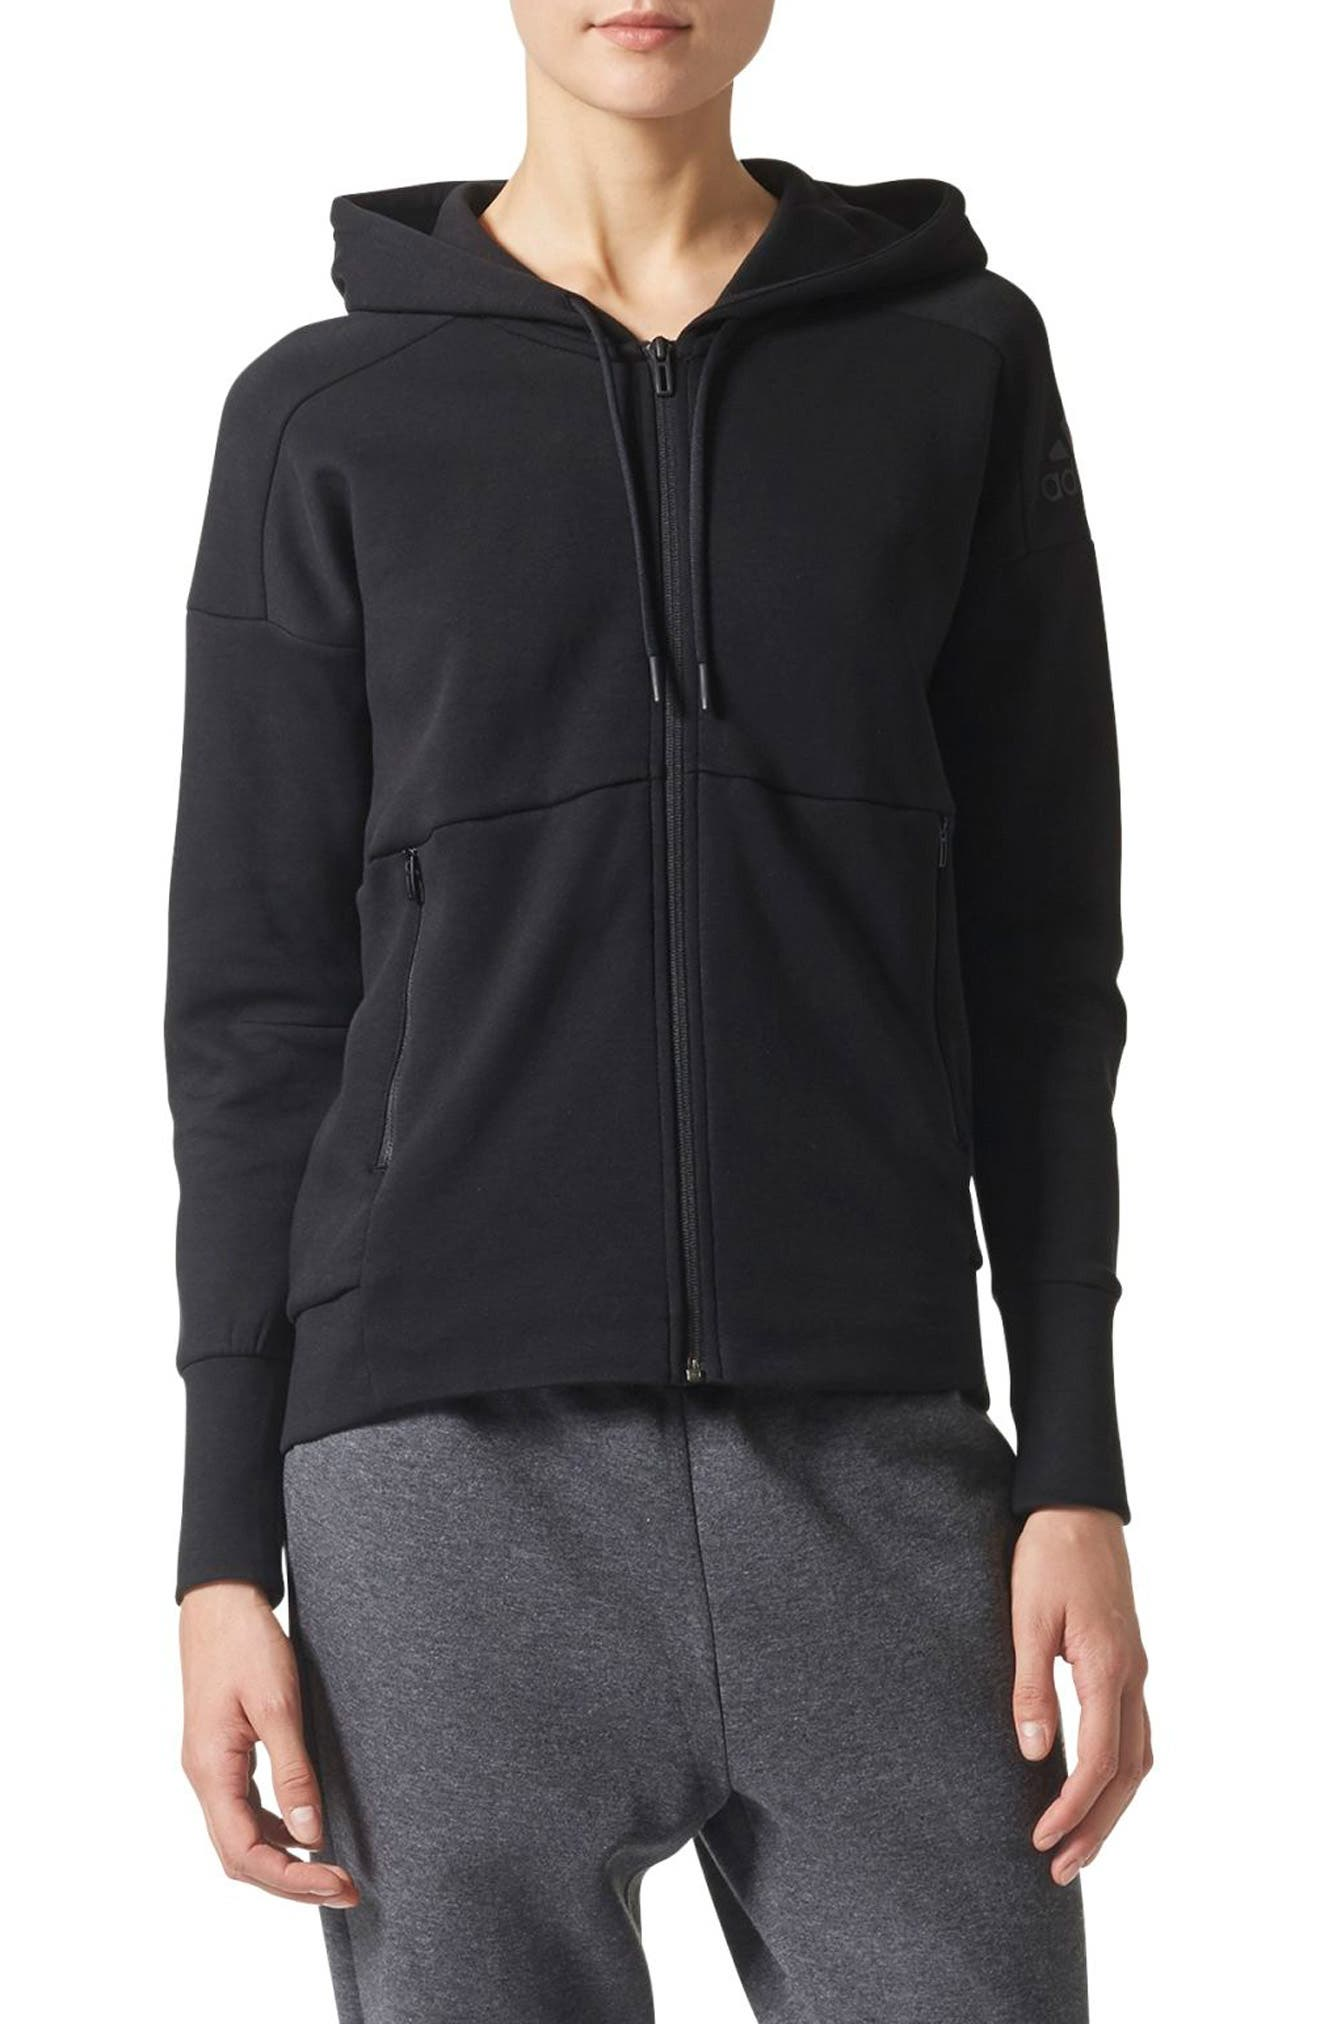 ID Stadium Hoodie,                         Main,                         color, Black